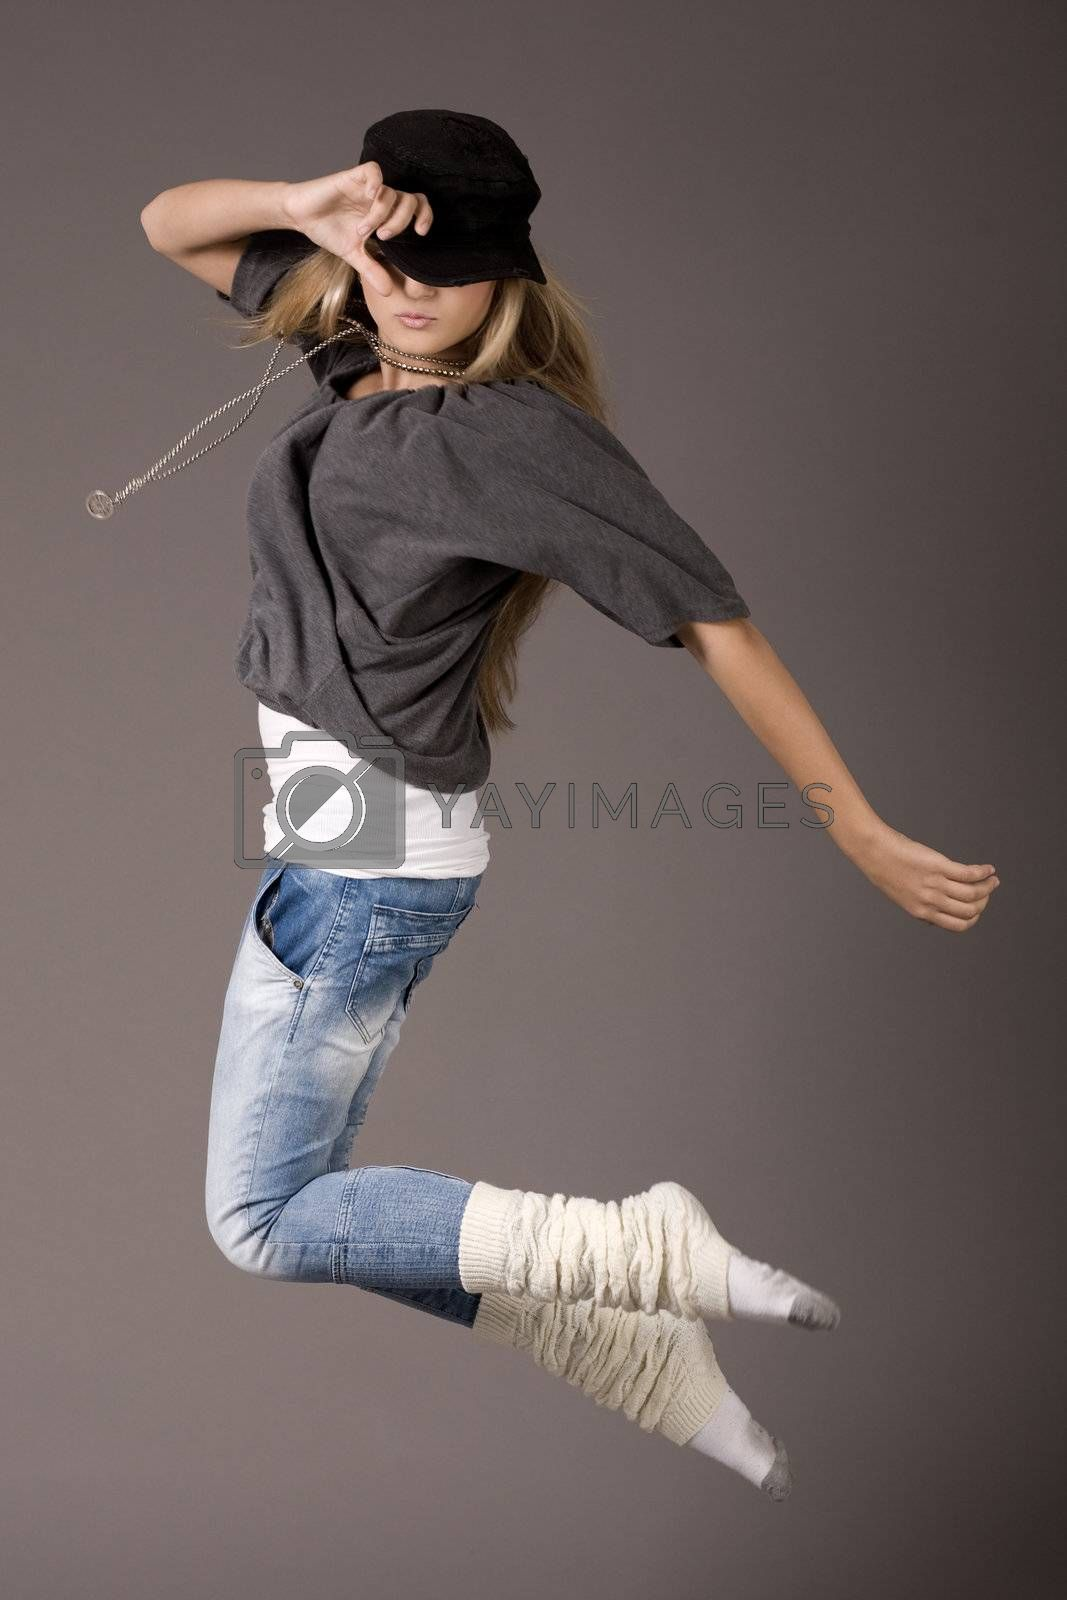 Young women jumping during her dance on grey background